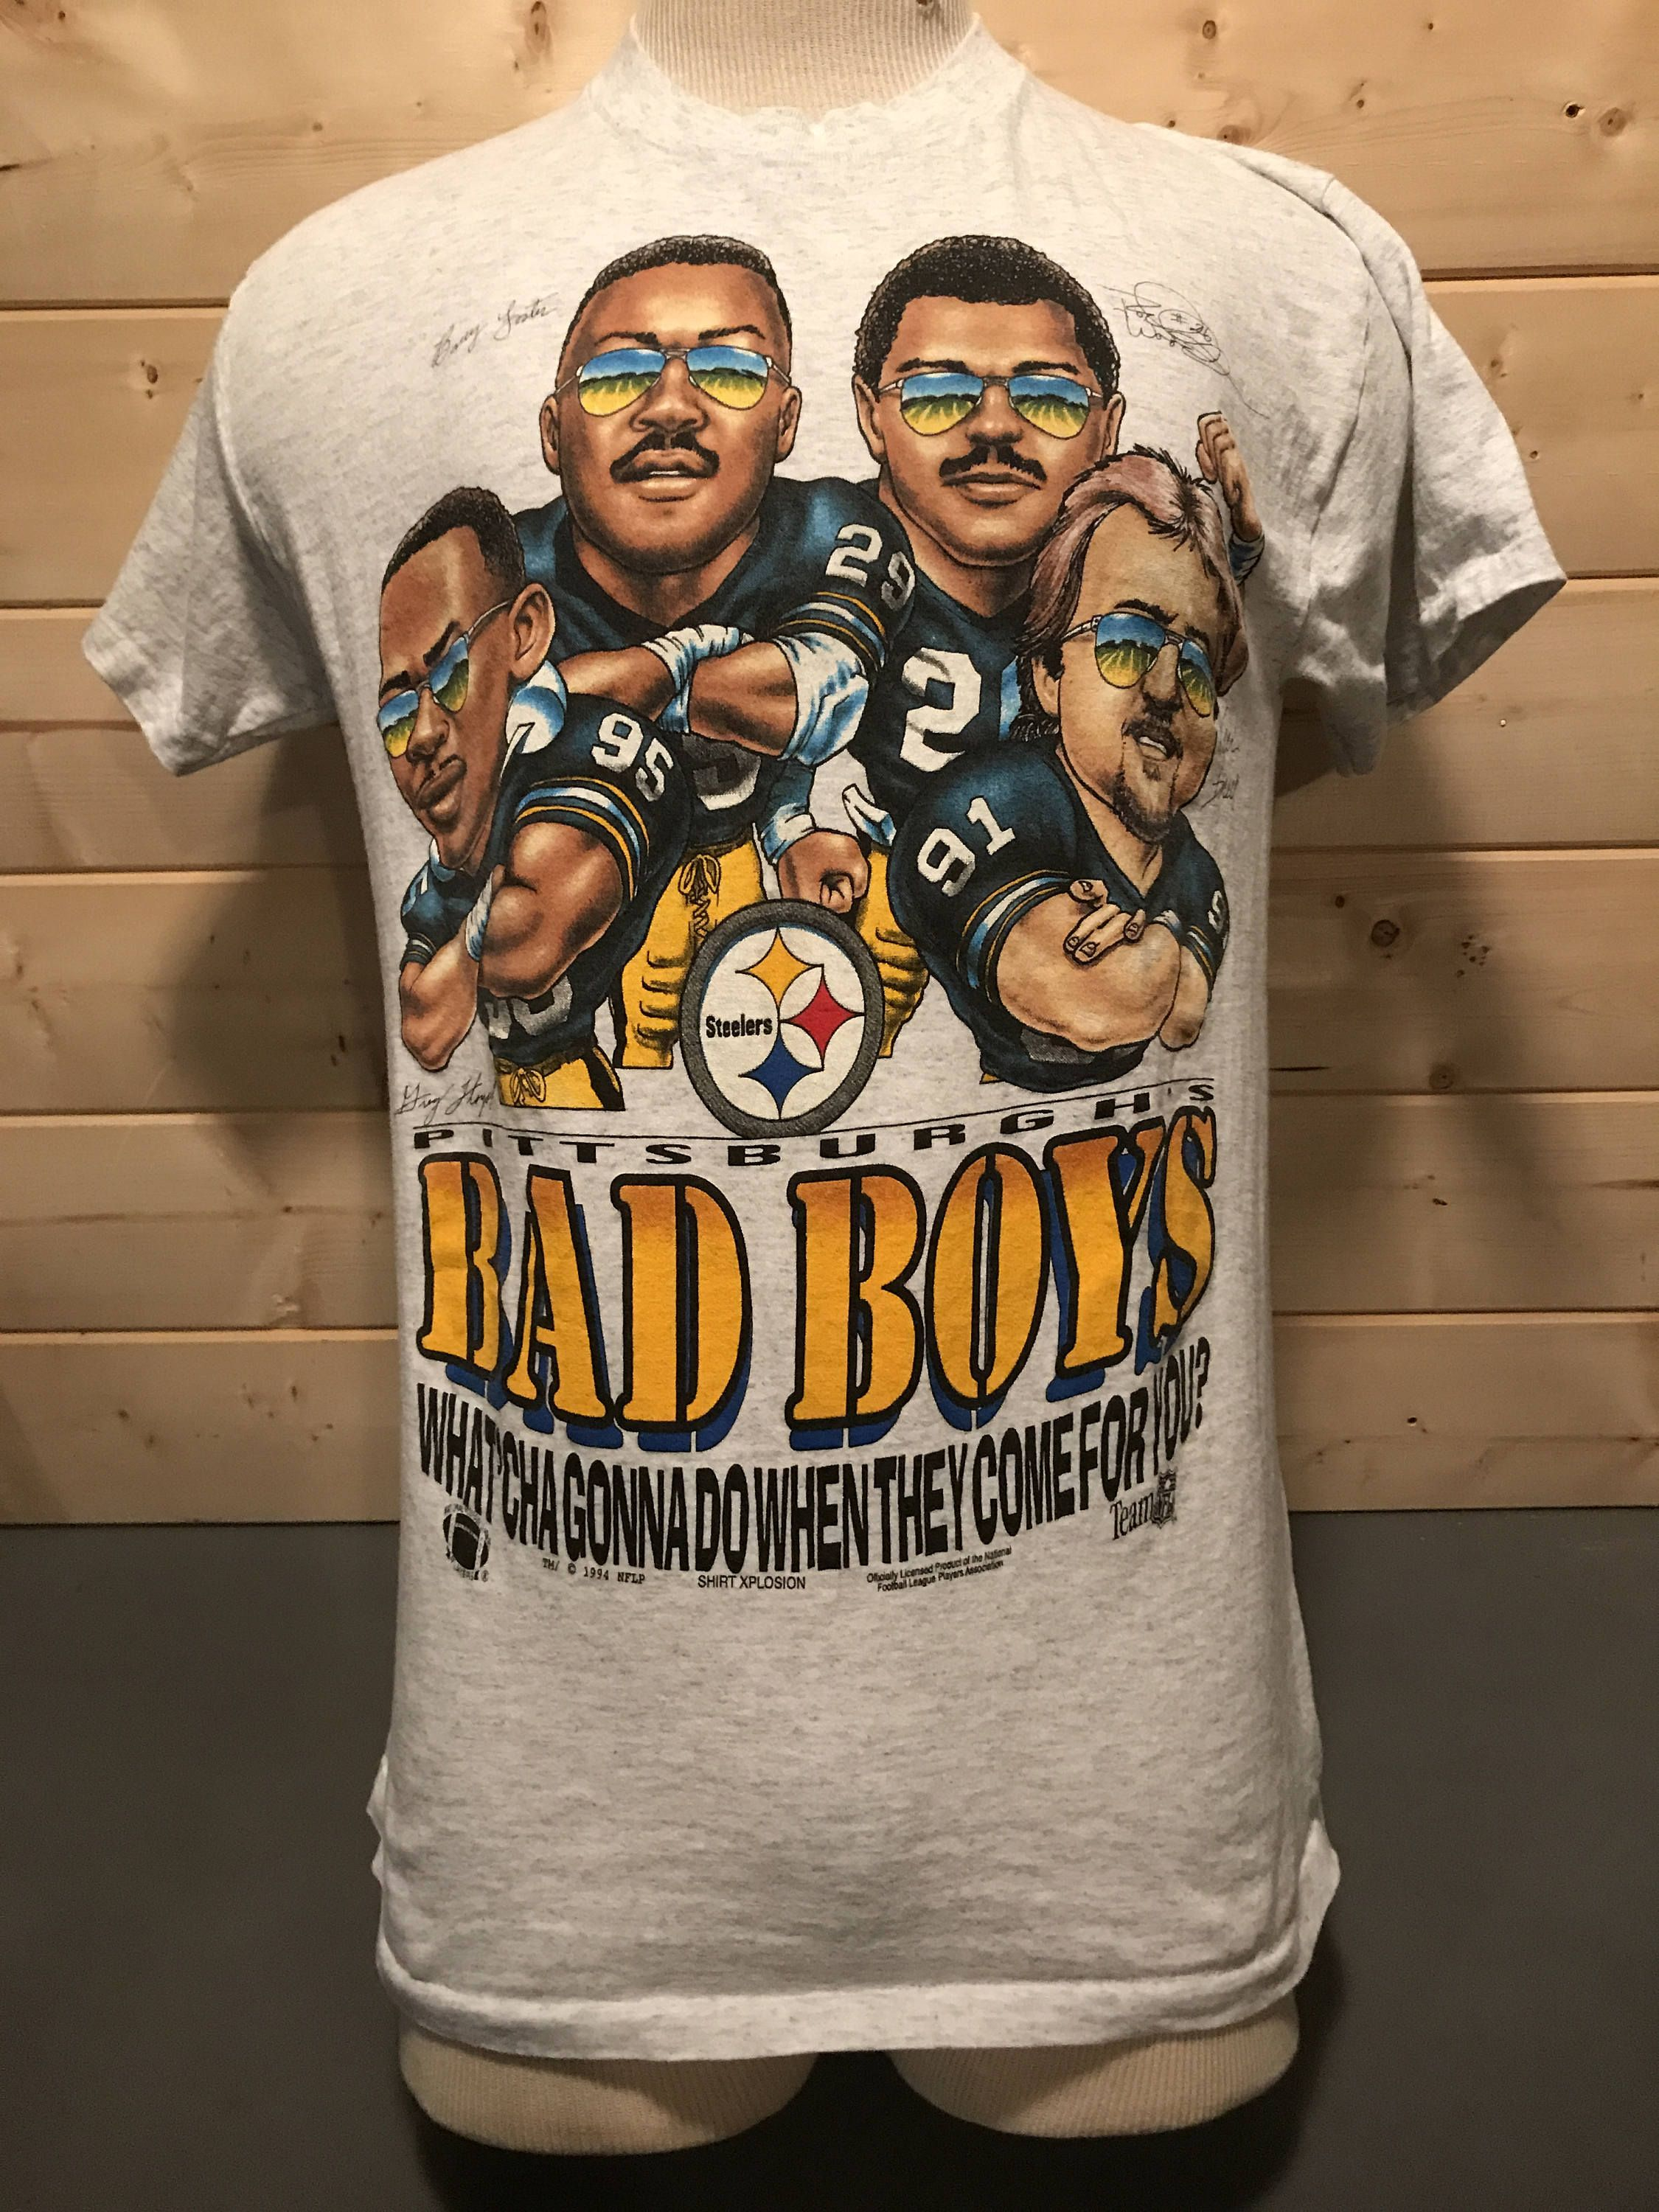 df054b9a1 Vintage 1990's Pittsburgh Steelers Bad Boys Cartoon Football T-Shirt Made  in USA by 413productions on Etsy